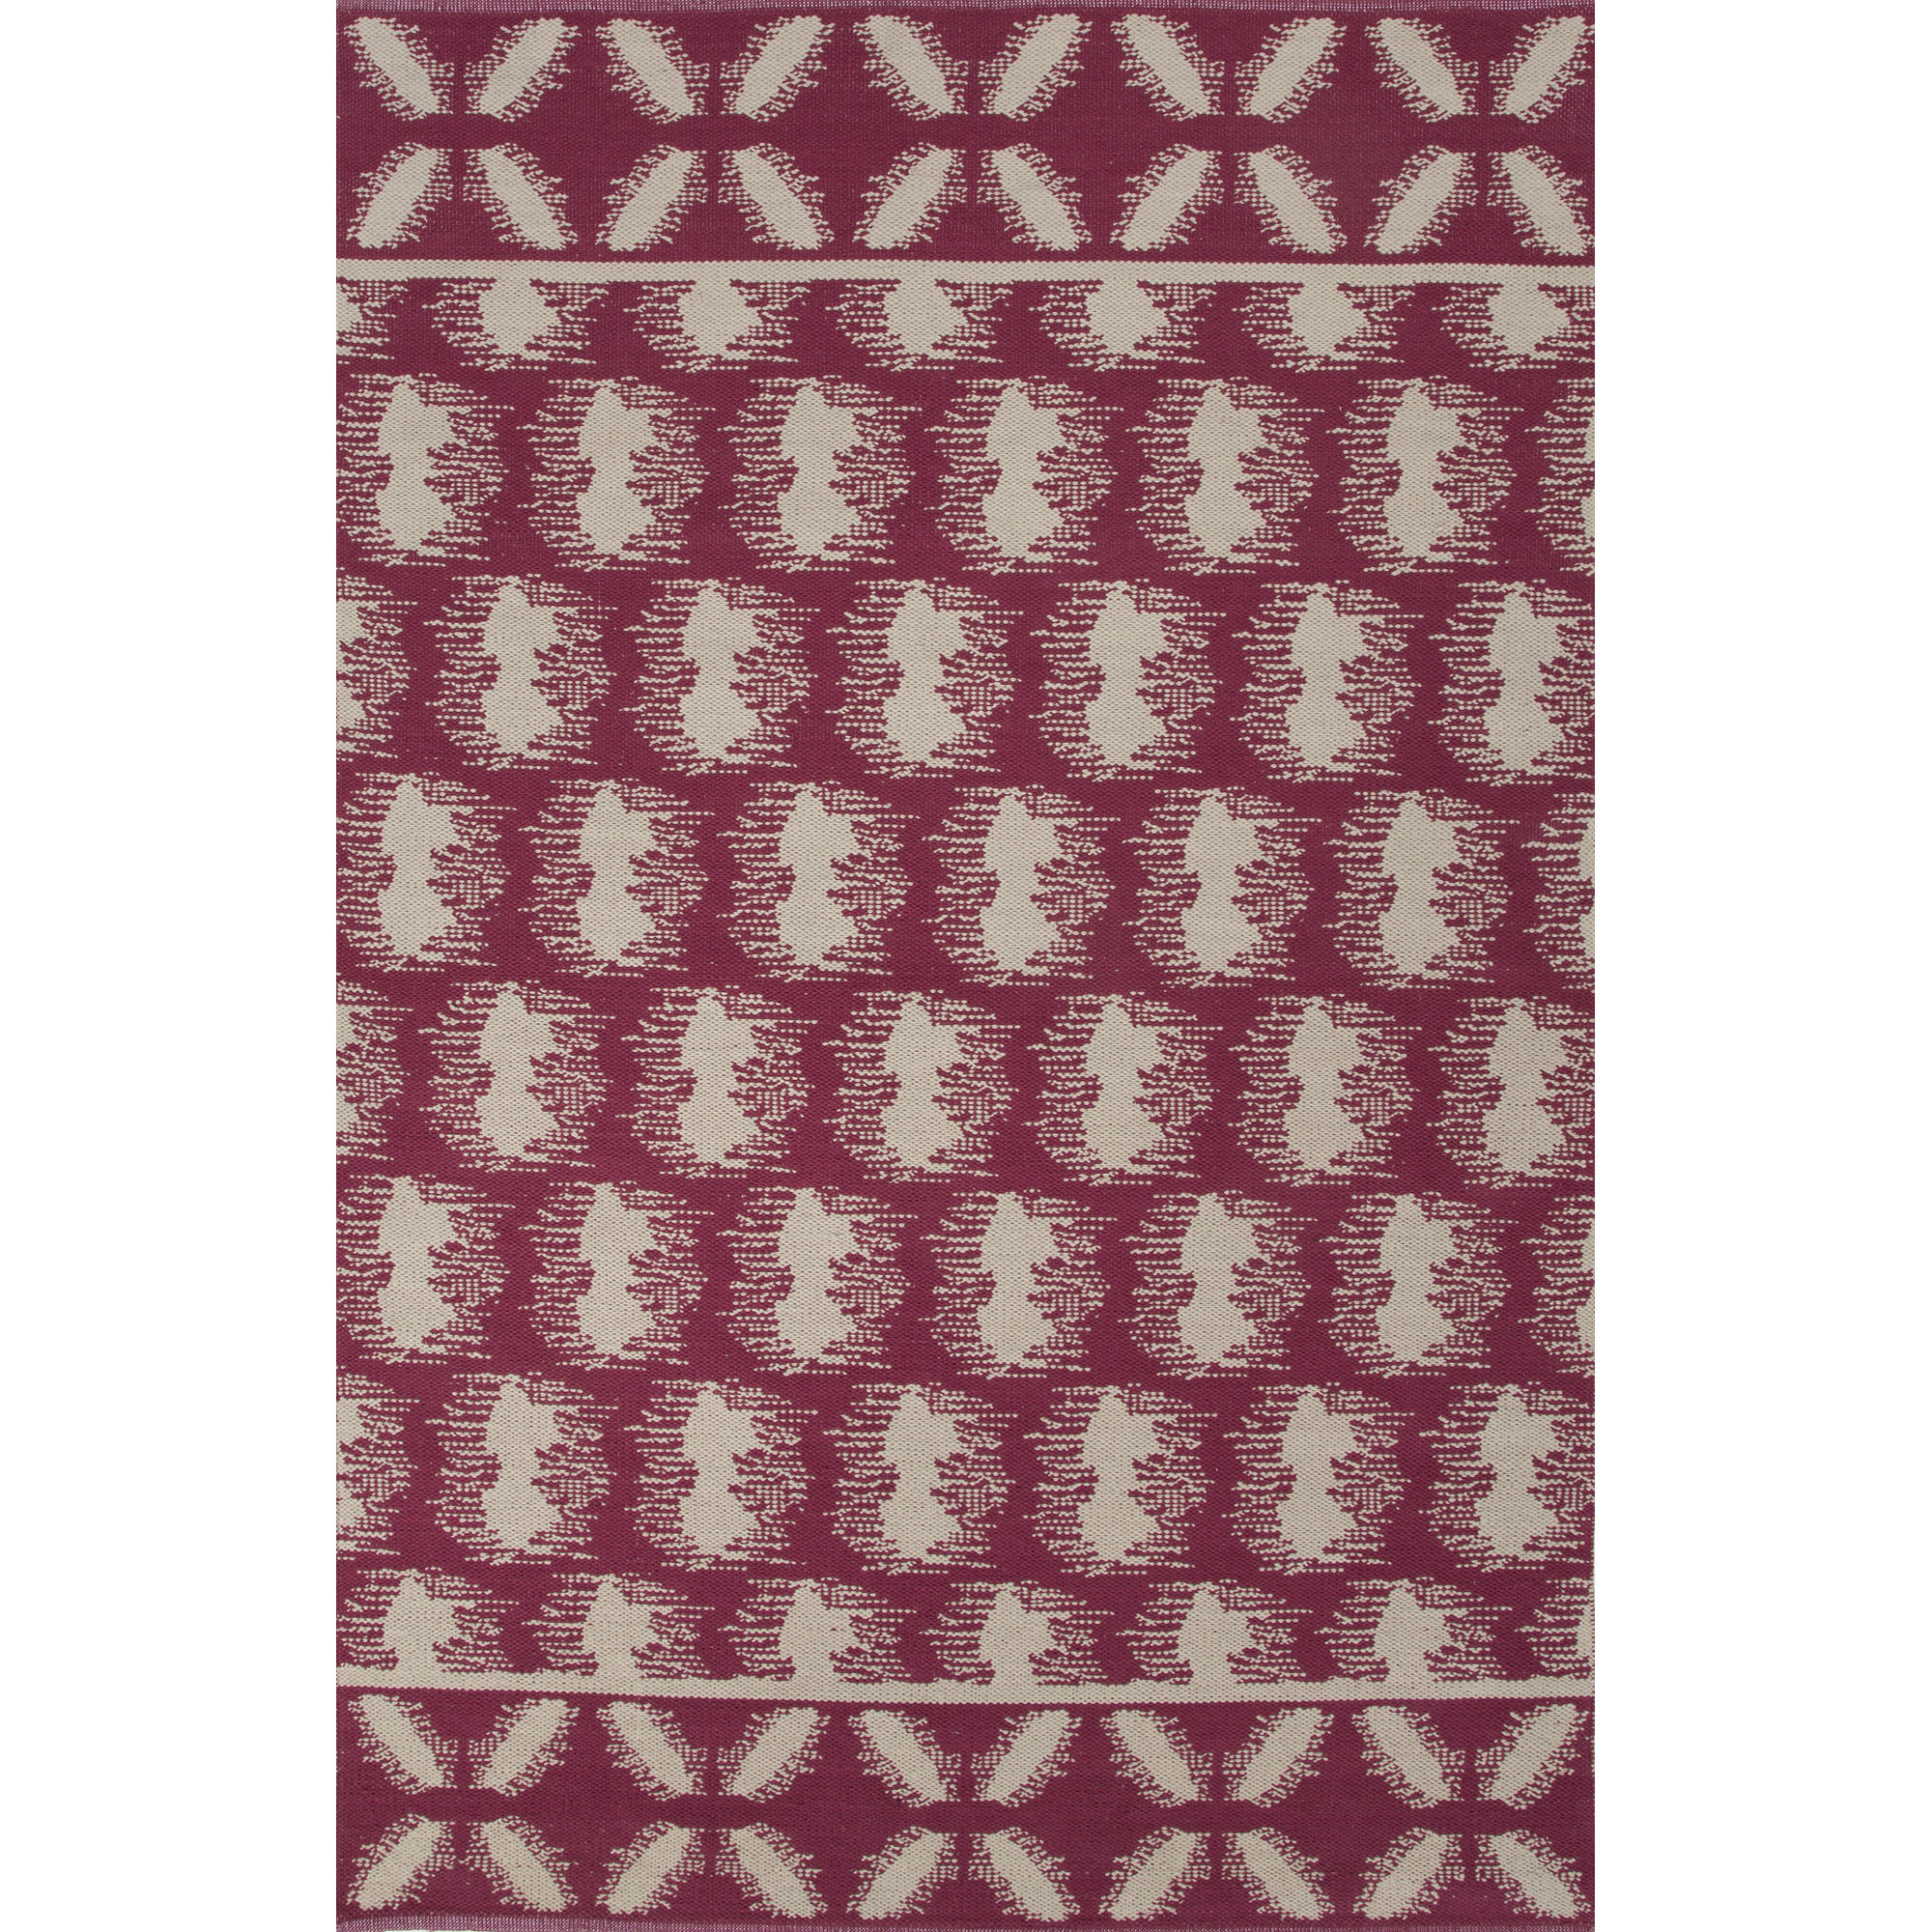 JAIPUR Rugs Traditions Modern Cotton Flat Weave 2 x 3 Rug - Item Number: RUG122230